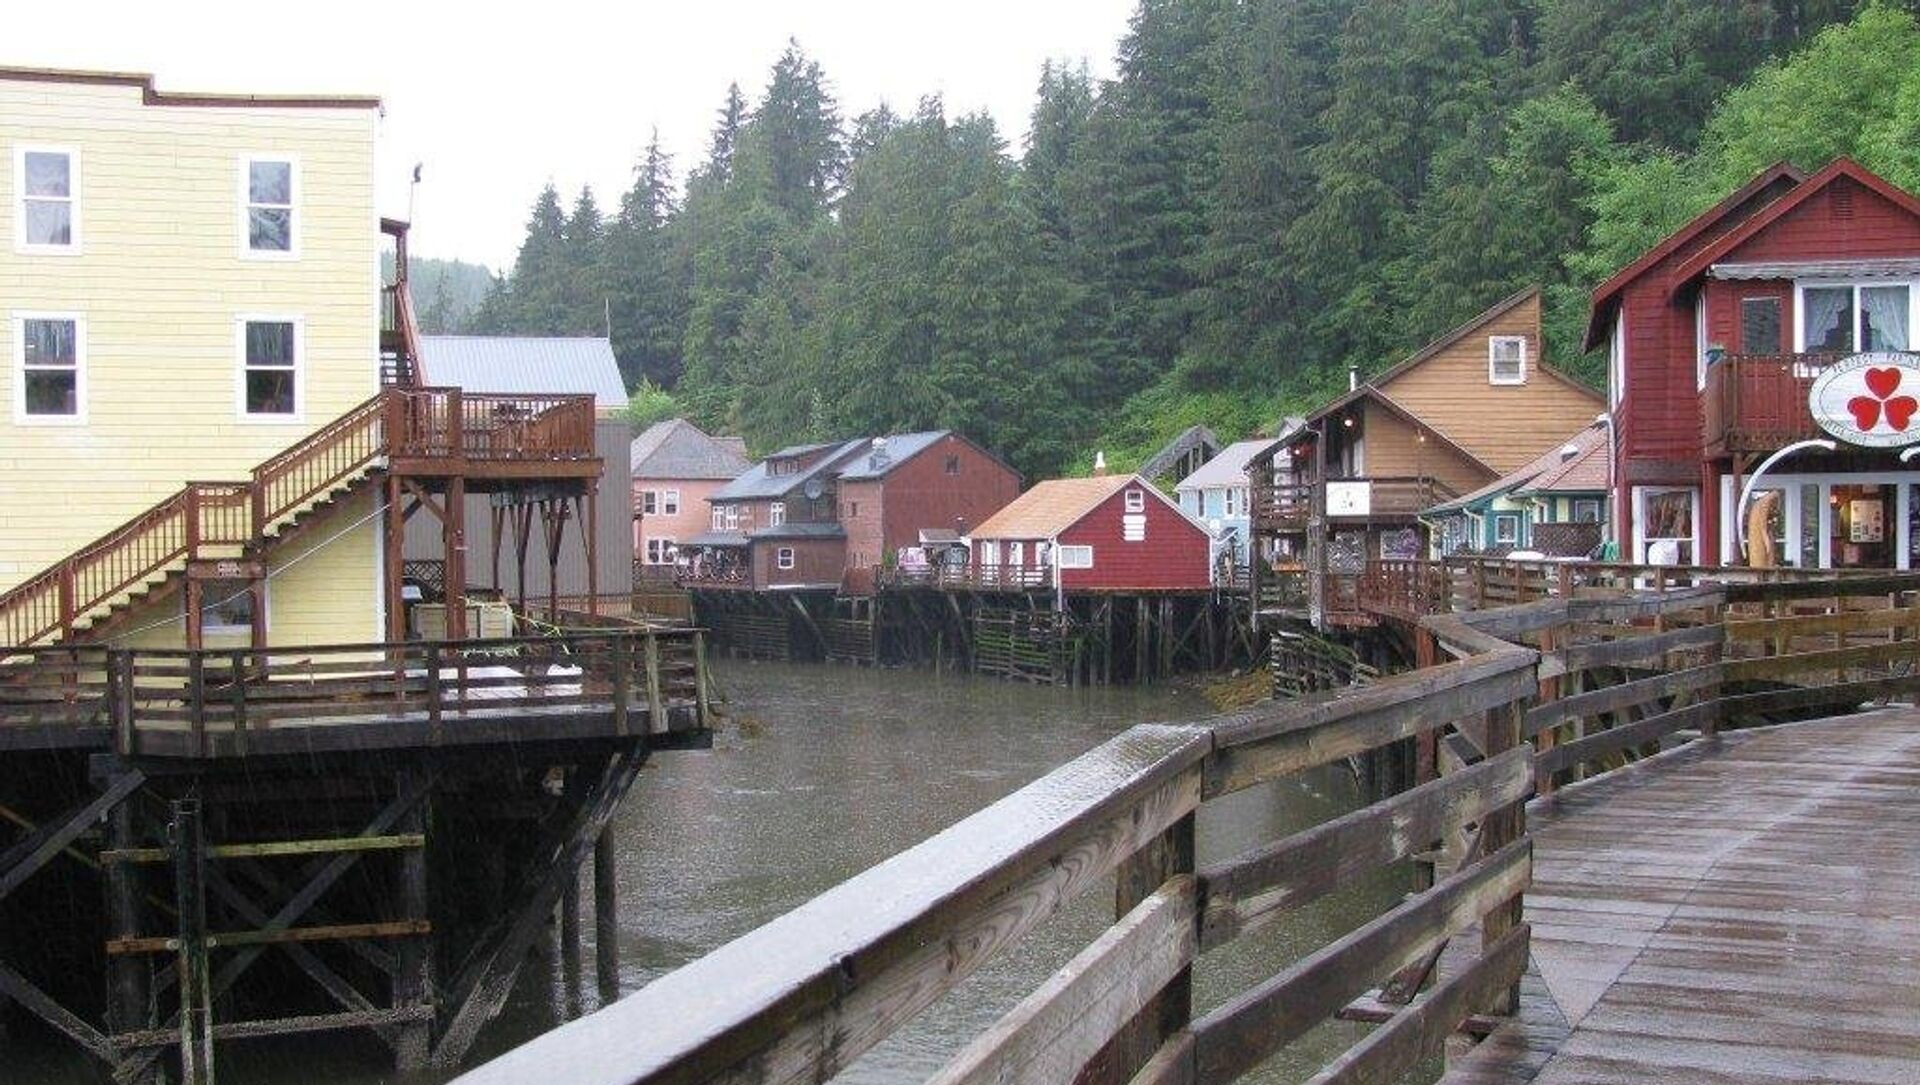 This August 2010 file photo shows a glimpse of Creek Street, a destination dotted with shops, galleries and restaurants, in Ketchikan, Alaska. - Sputnik International, 1920, 06.08.2021